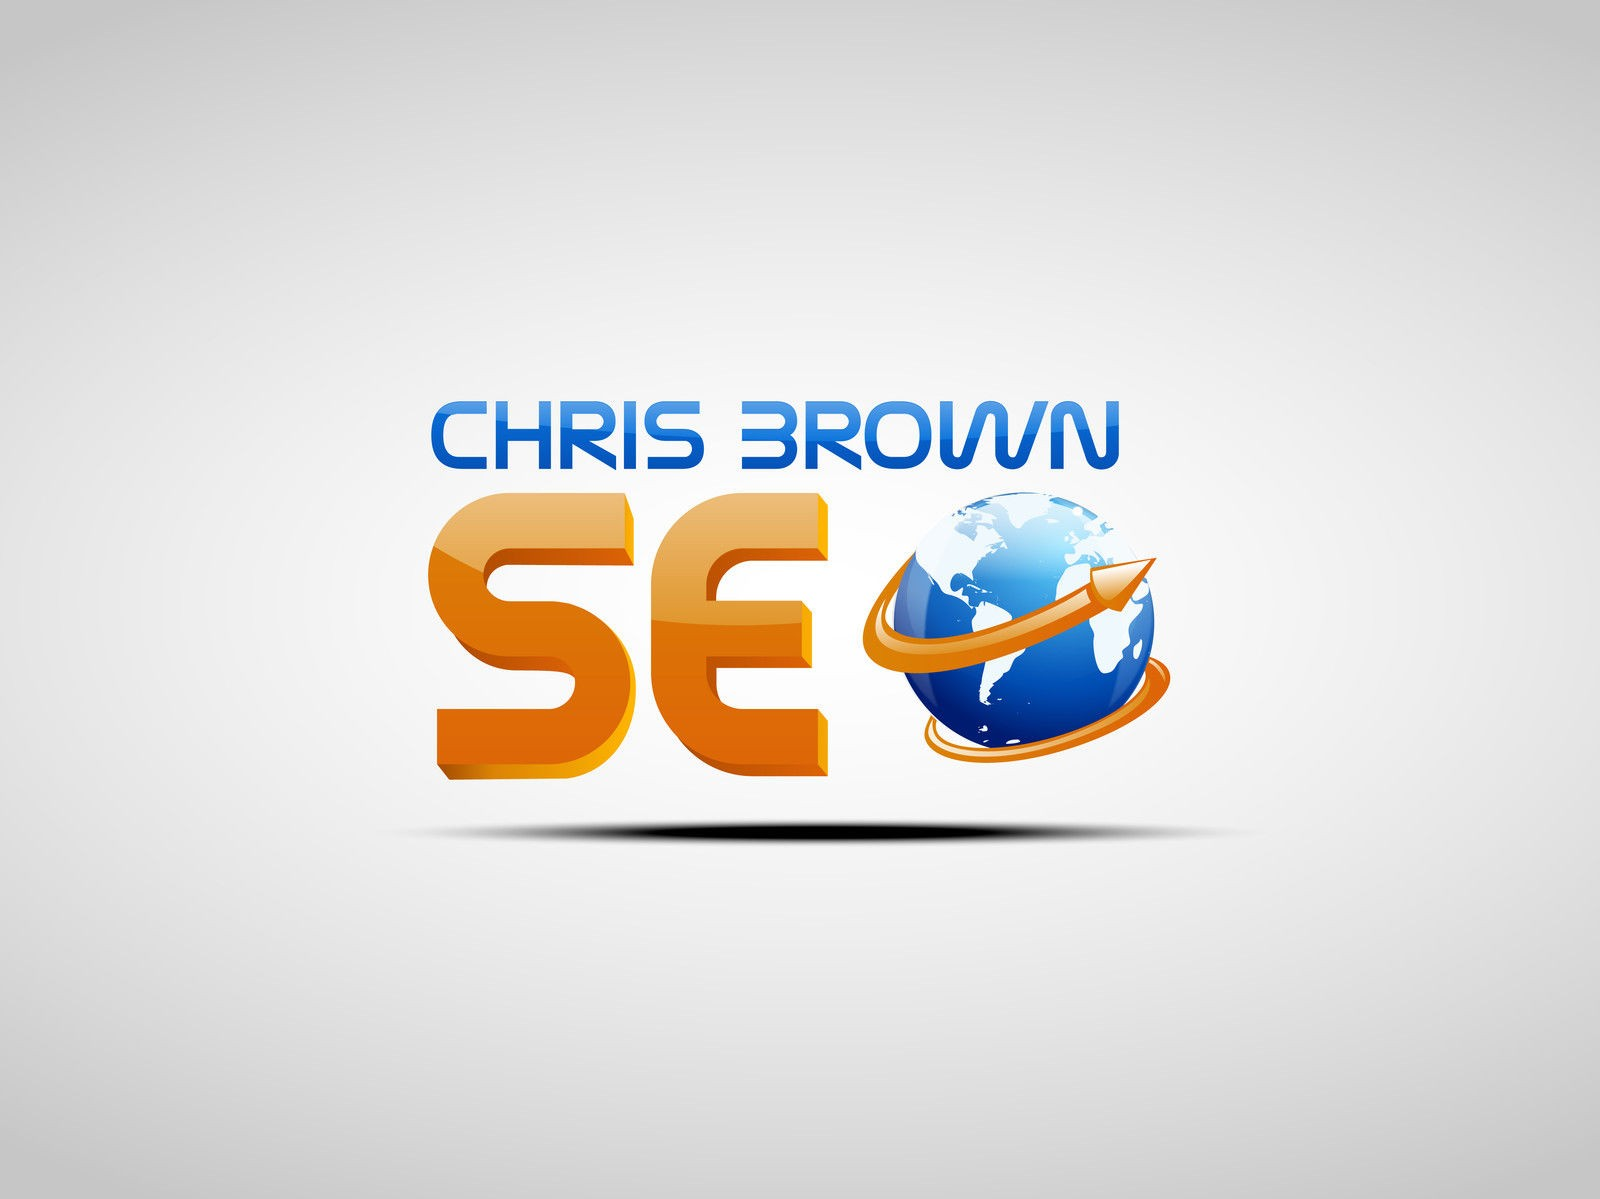 All in One ChrisBrownWheel Exclusive SEO Service- Google Rank-BACKLINKS PYRAMID